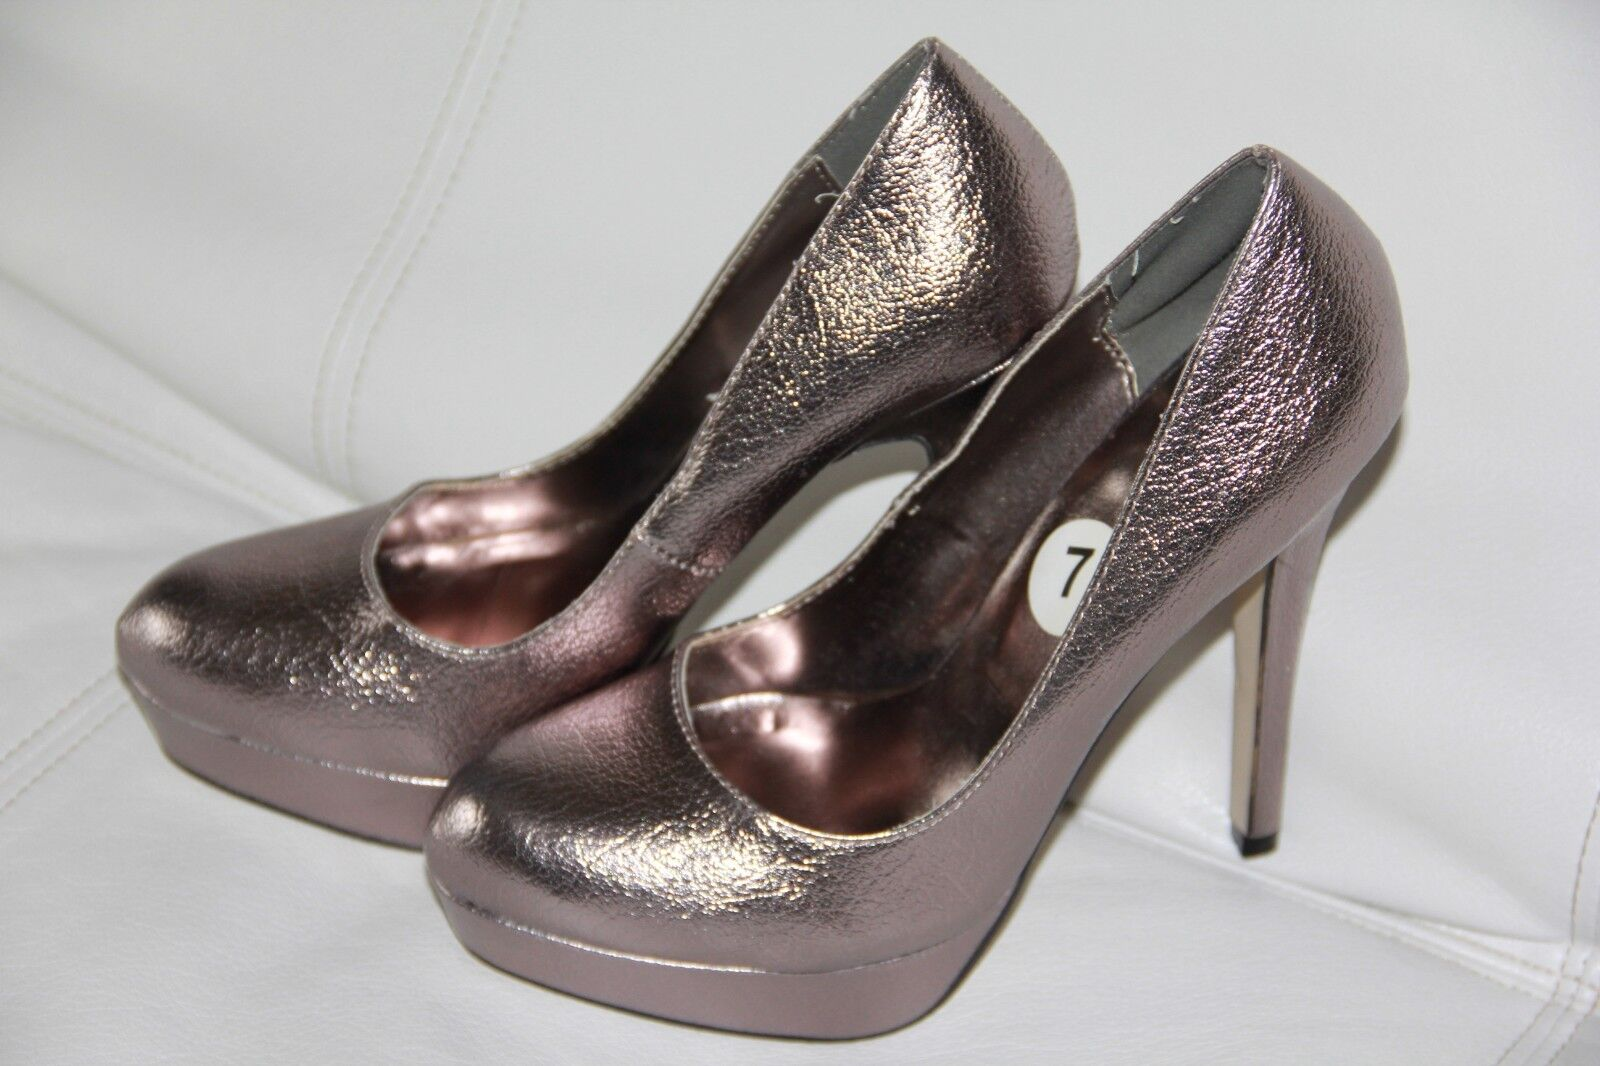 New JOEY Metallic HIGH  Women's Platform Shoes HIGH Metallic Heels  Size 7 55696d